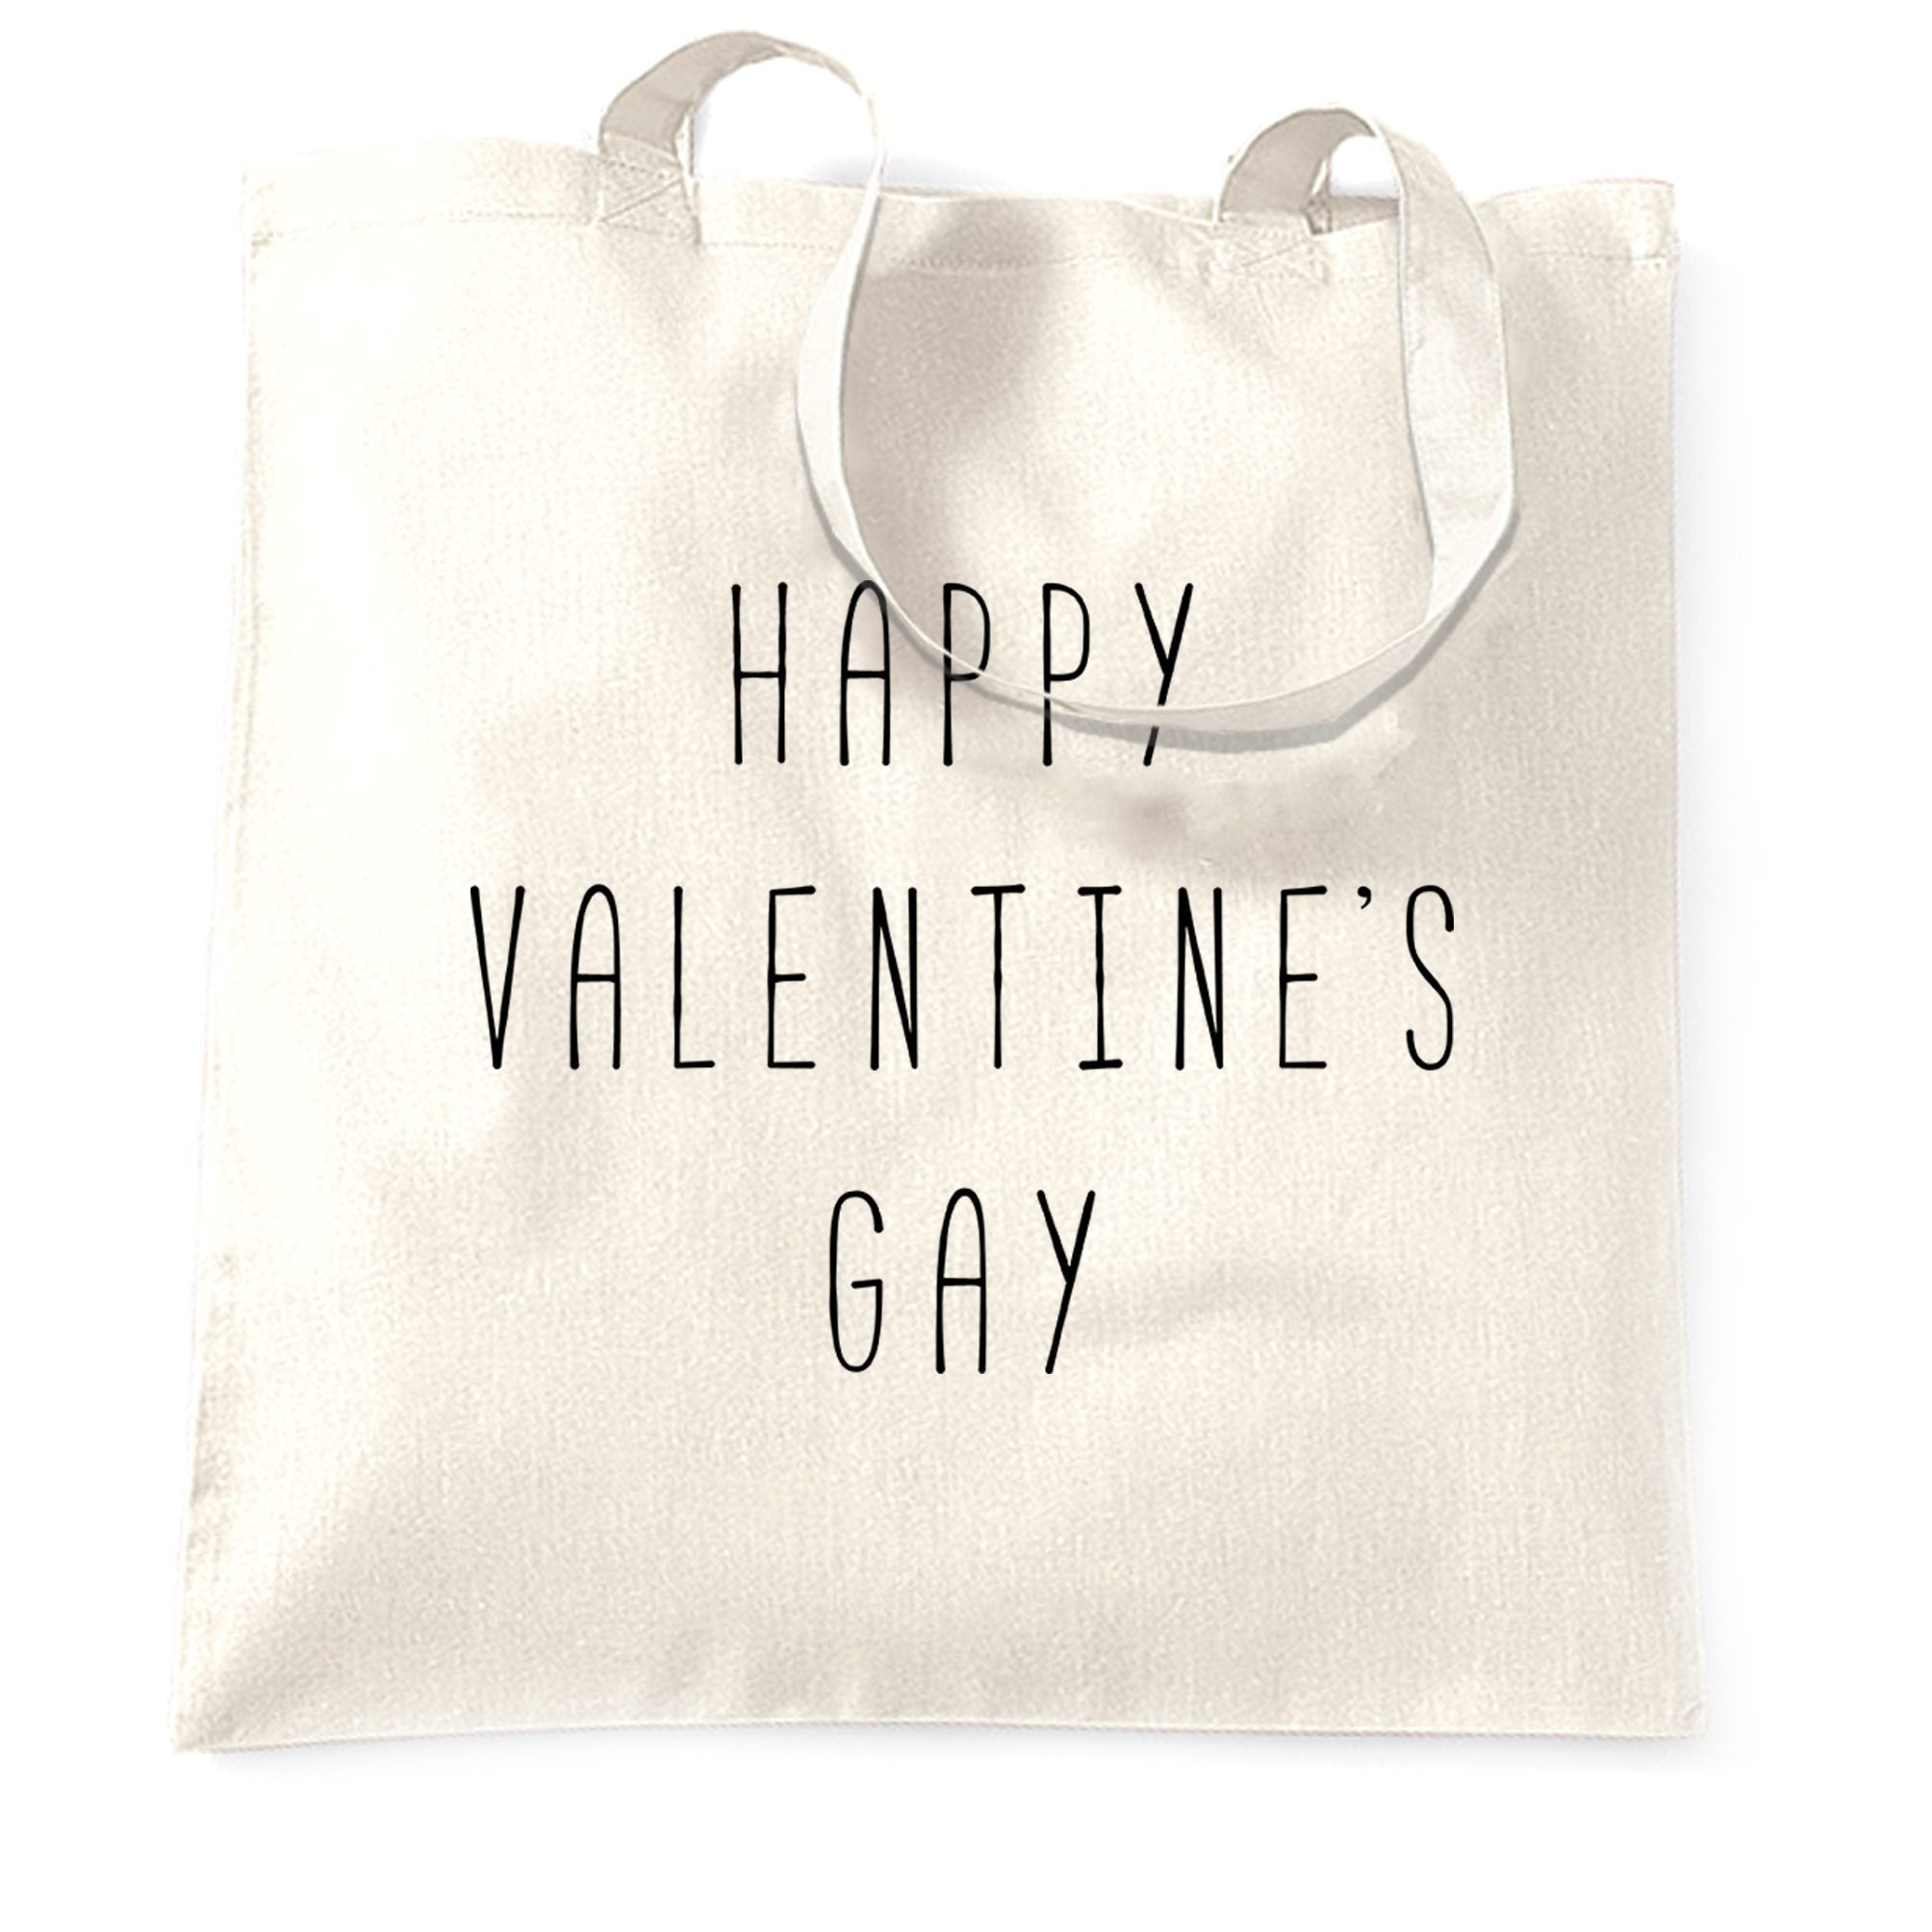 Relationship Tote Bag Happy Valentine's Gay Pun